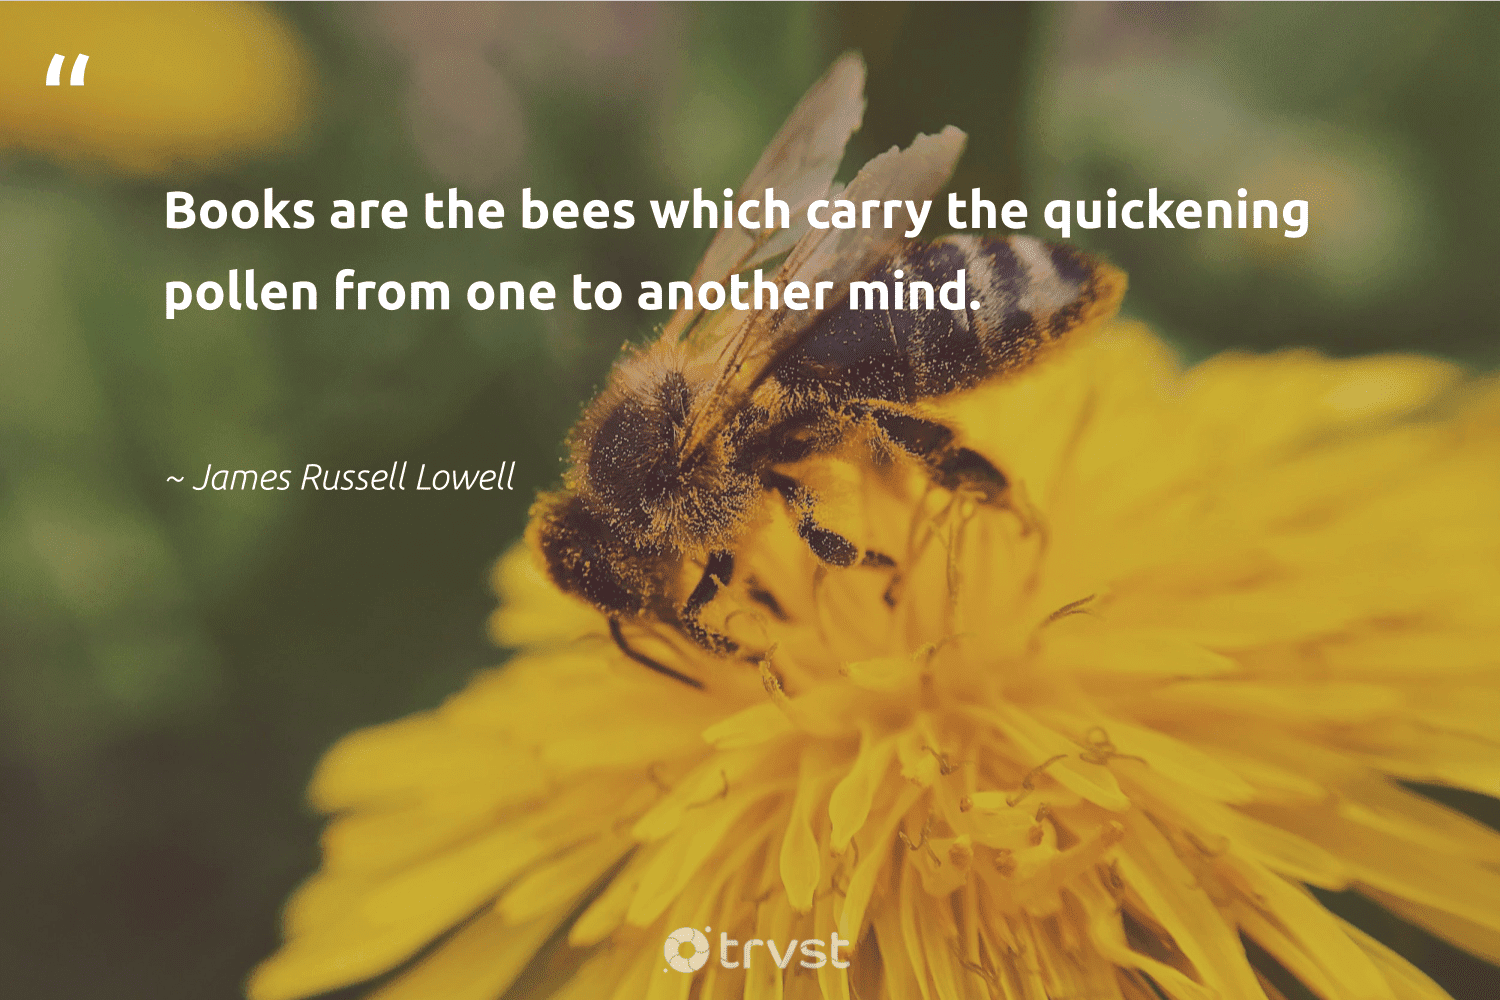 """""""Books are the bees which carry the quickening pollen from one to another mind.""""  - James Russell Lowell #trvst #quotes #bees #pollen #beeswax #insects #biology #planetearthfirst #bee #apiary #forscience #thinkgreen"""